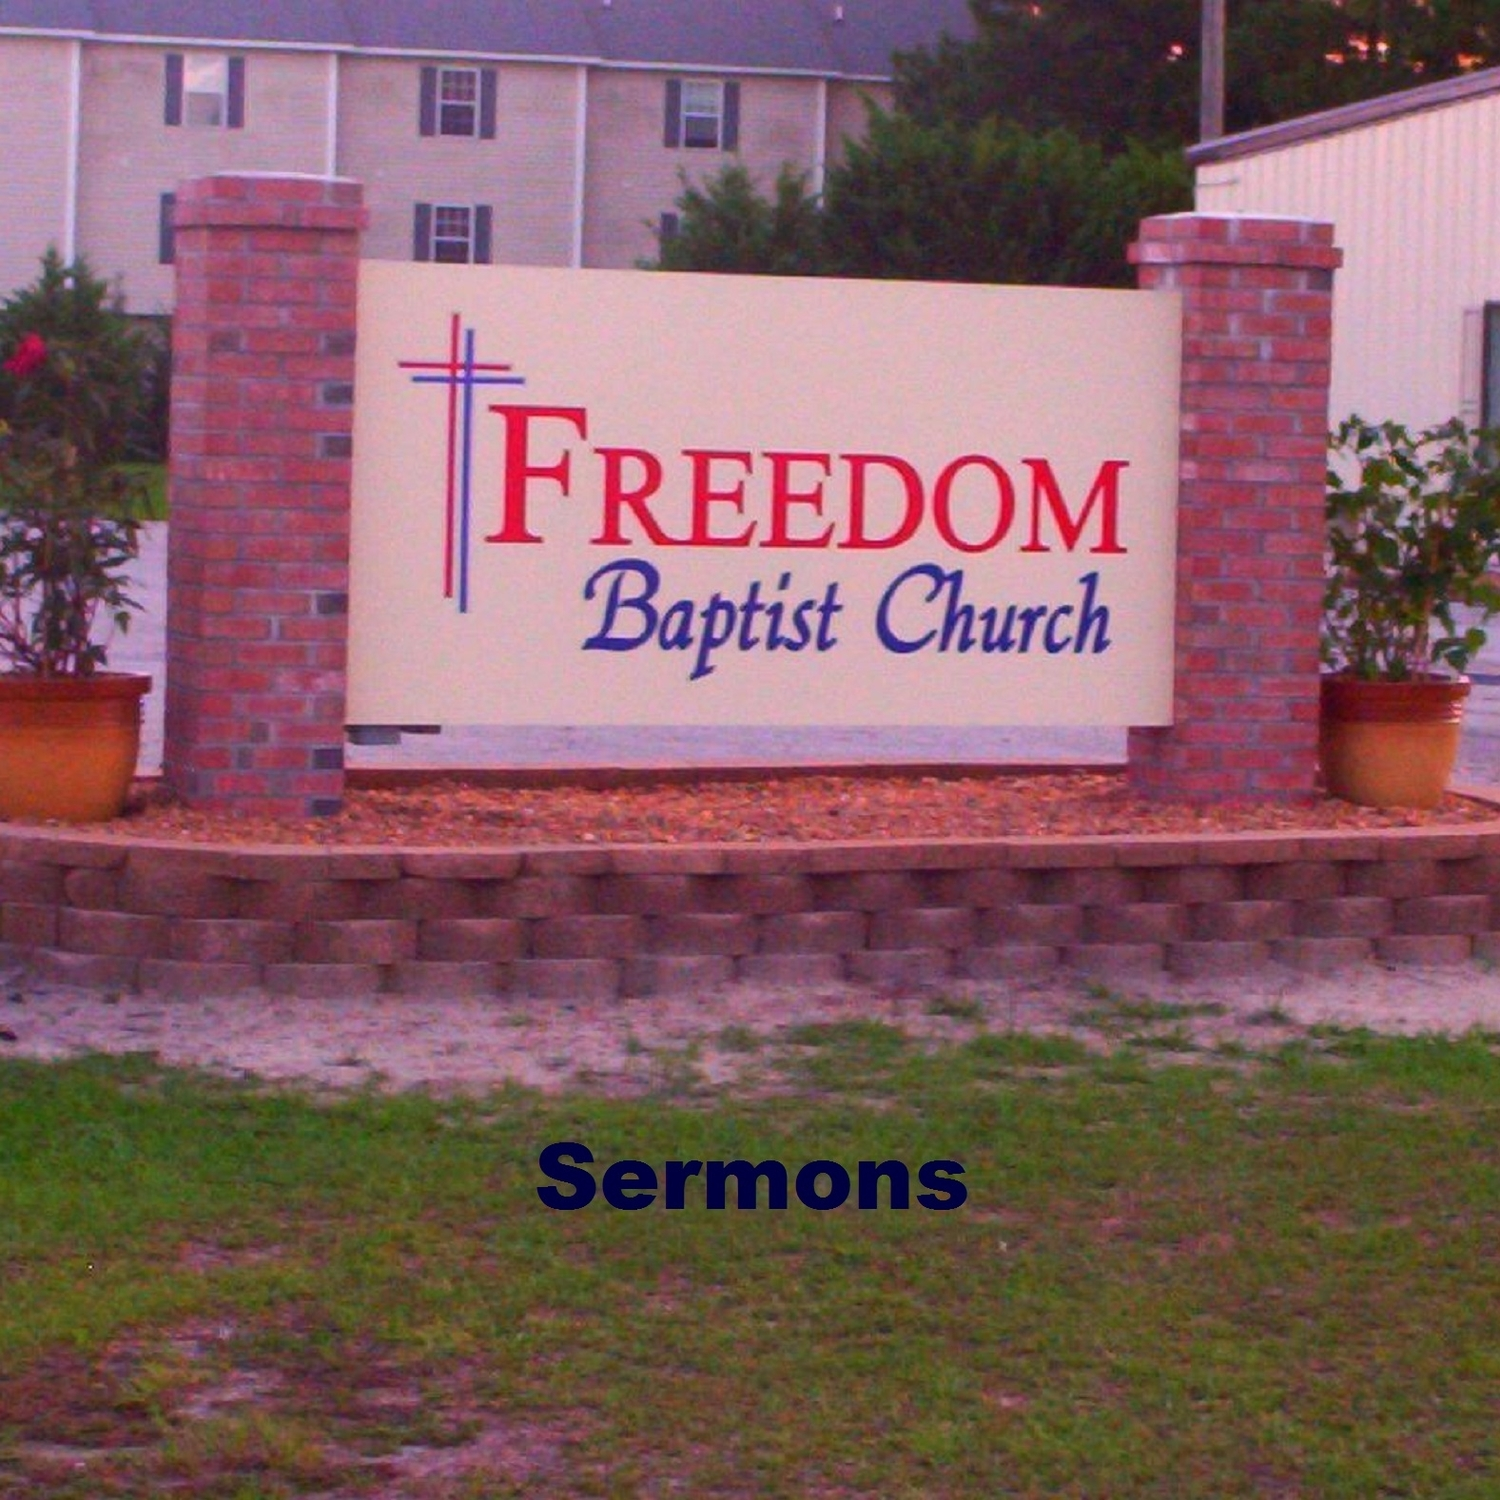 Sermons - Freedom Baptist Church